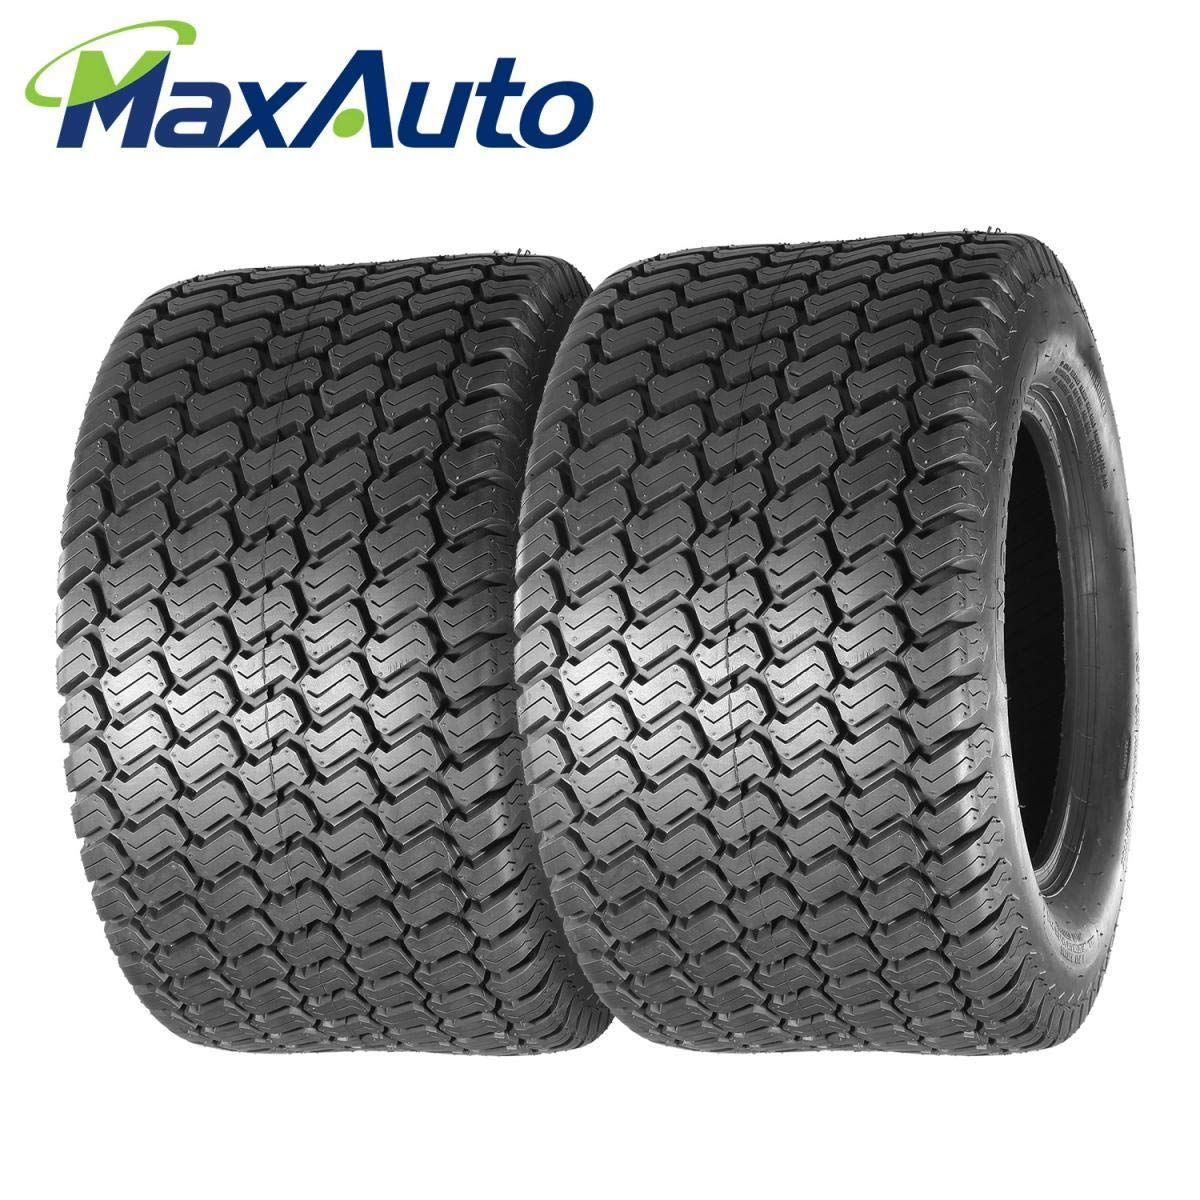 Maxauto 24x12 12 24x12 00 12 Tractor Tubeless In 2020 Tractor Tires Golf Carts Lawn Mower